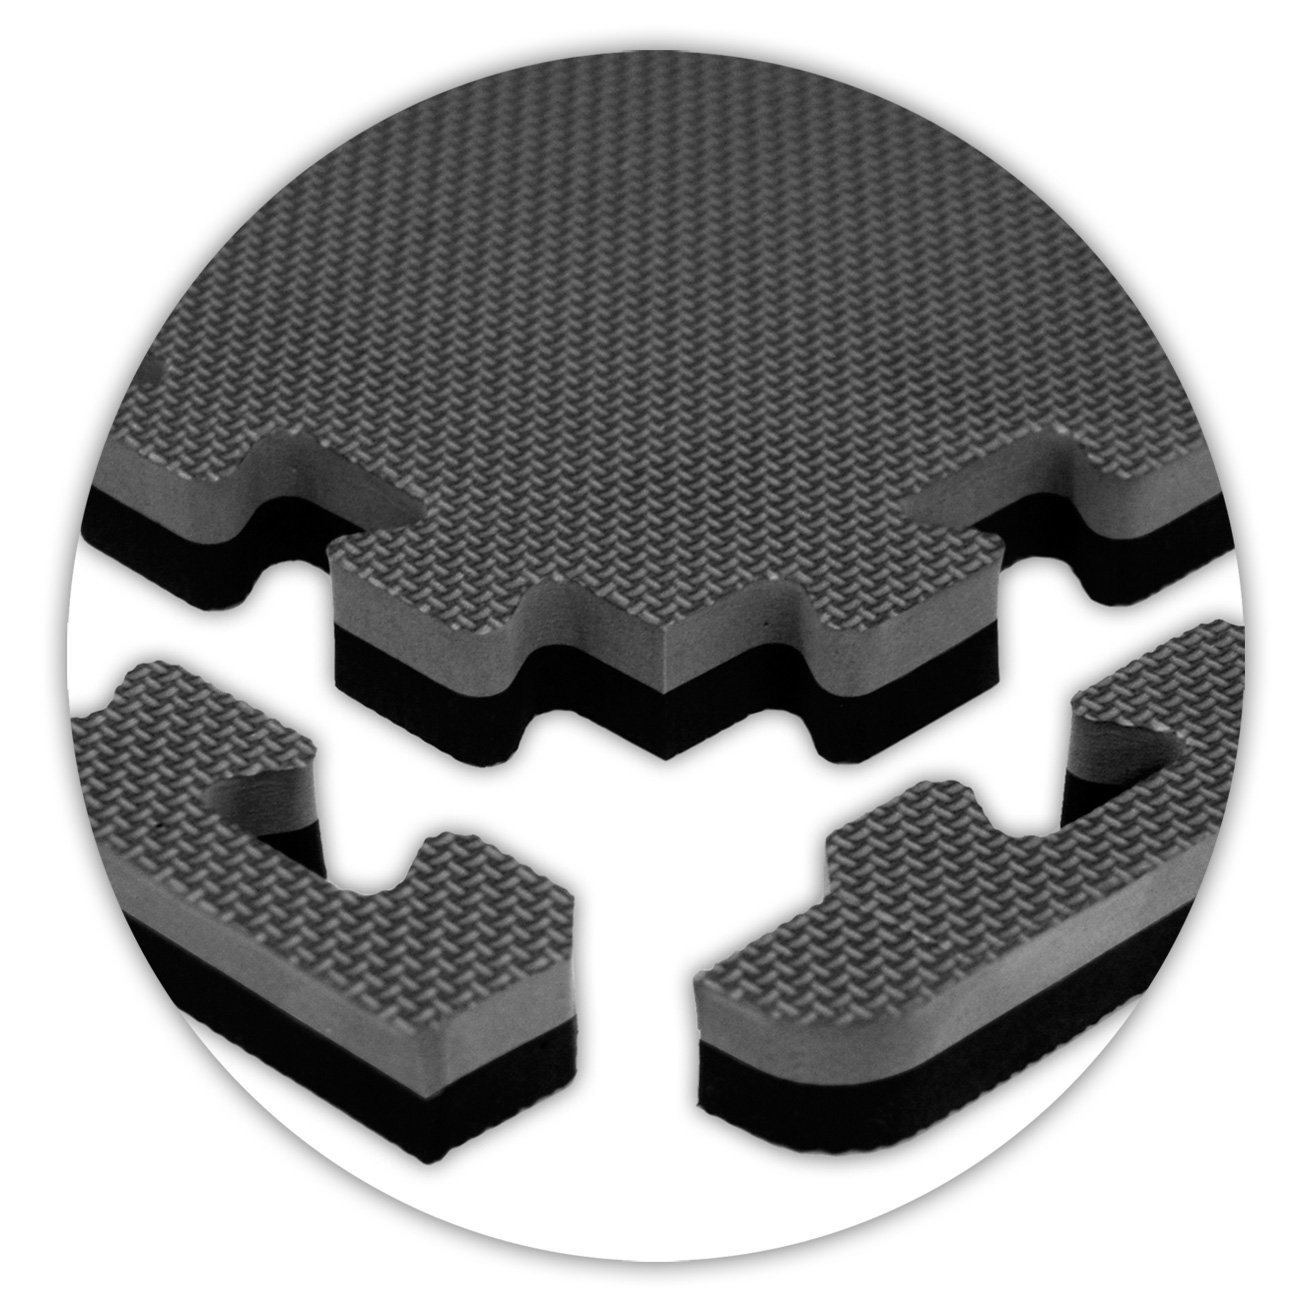 American Floor Mats Jumbo Reversible 7/8'' Thickness Black/Grey 8' x 16' (Set 32 Tiles Total) SoftFloors Interlocking Tiles